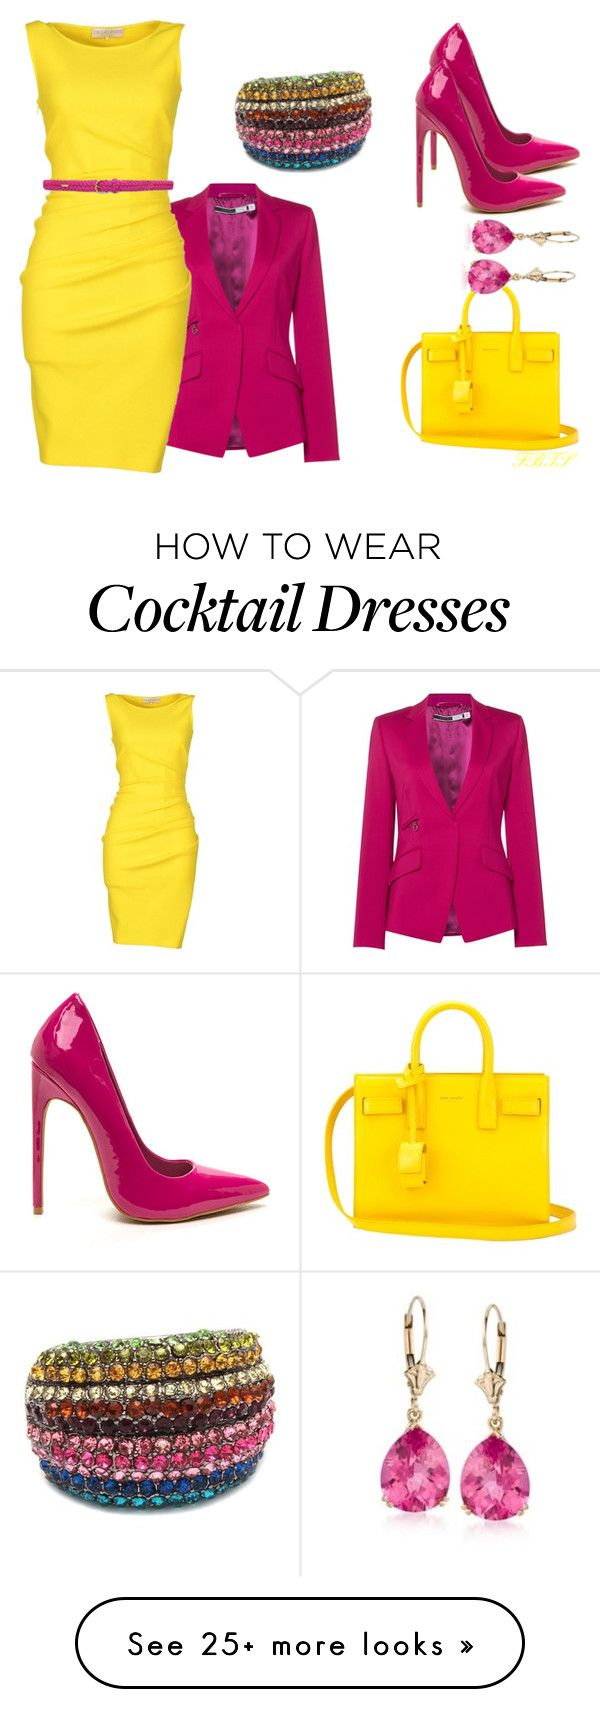 """Pops Of Color"" by flybeyondtheskies on Polyvore featuring Sportmax, Emilio Pucci, Lauren Ralph Lauren, Yves Saint Laurent and Ross-Simons"